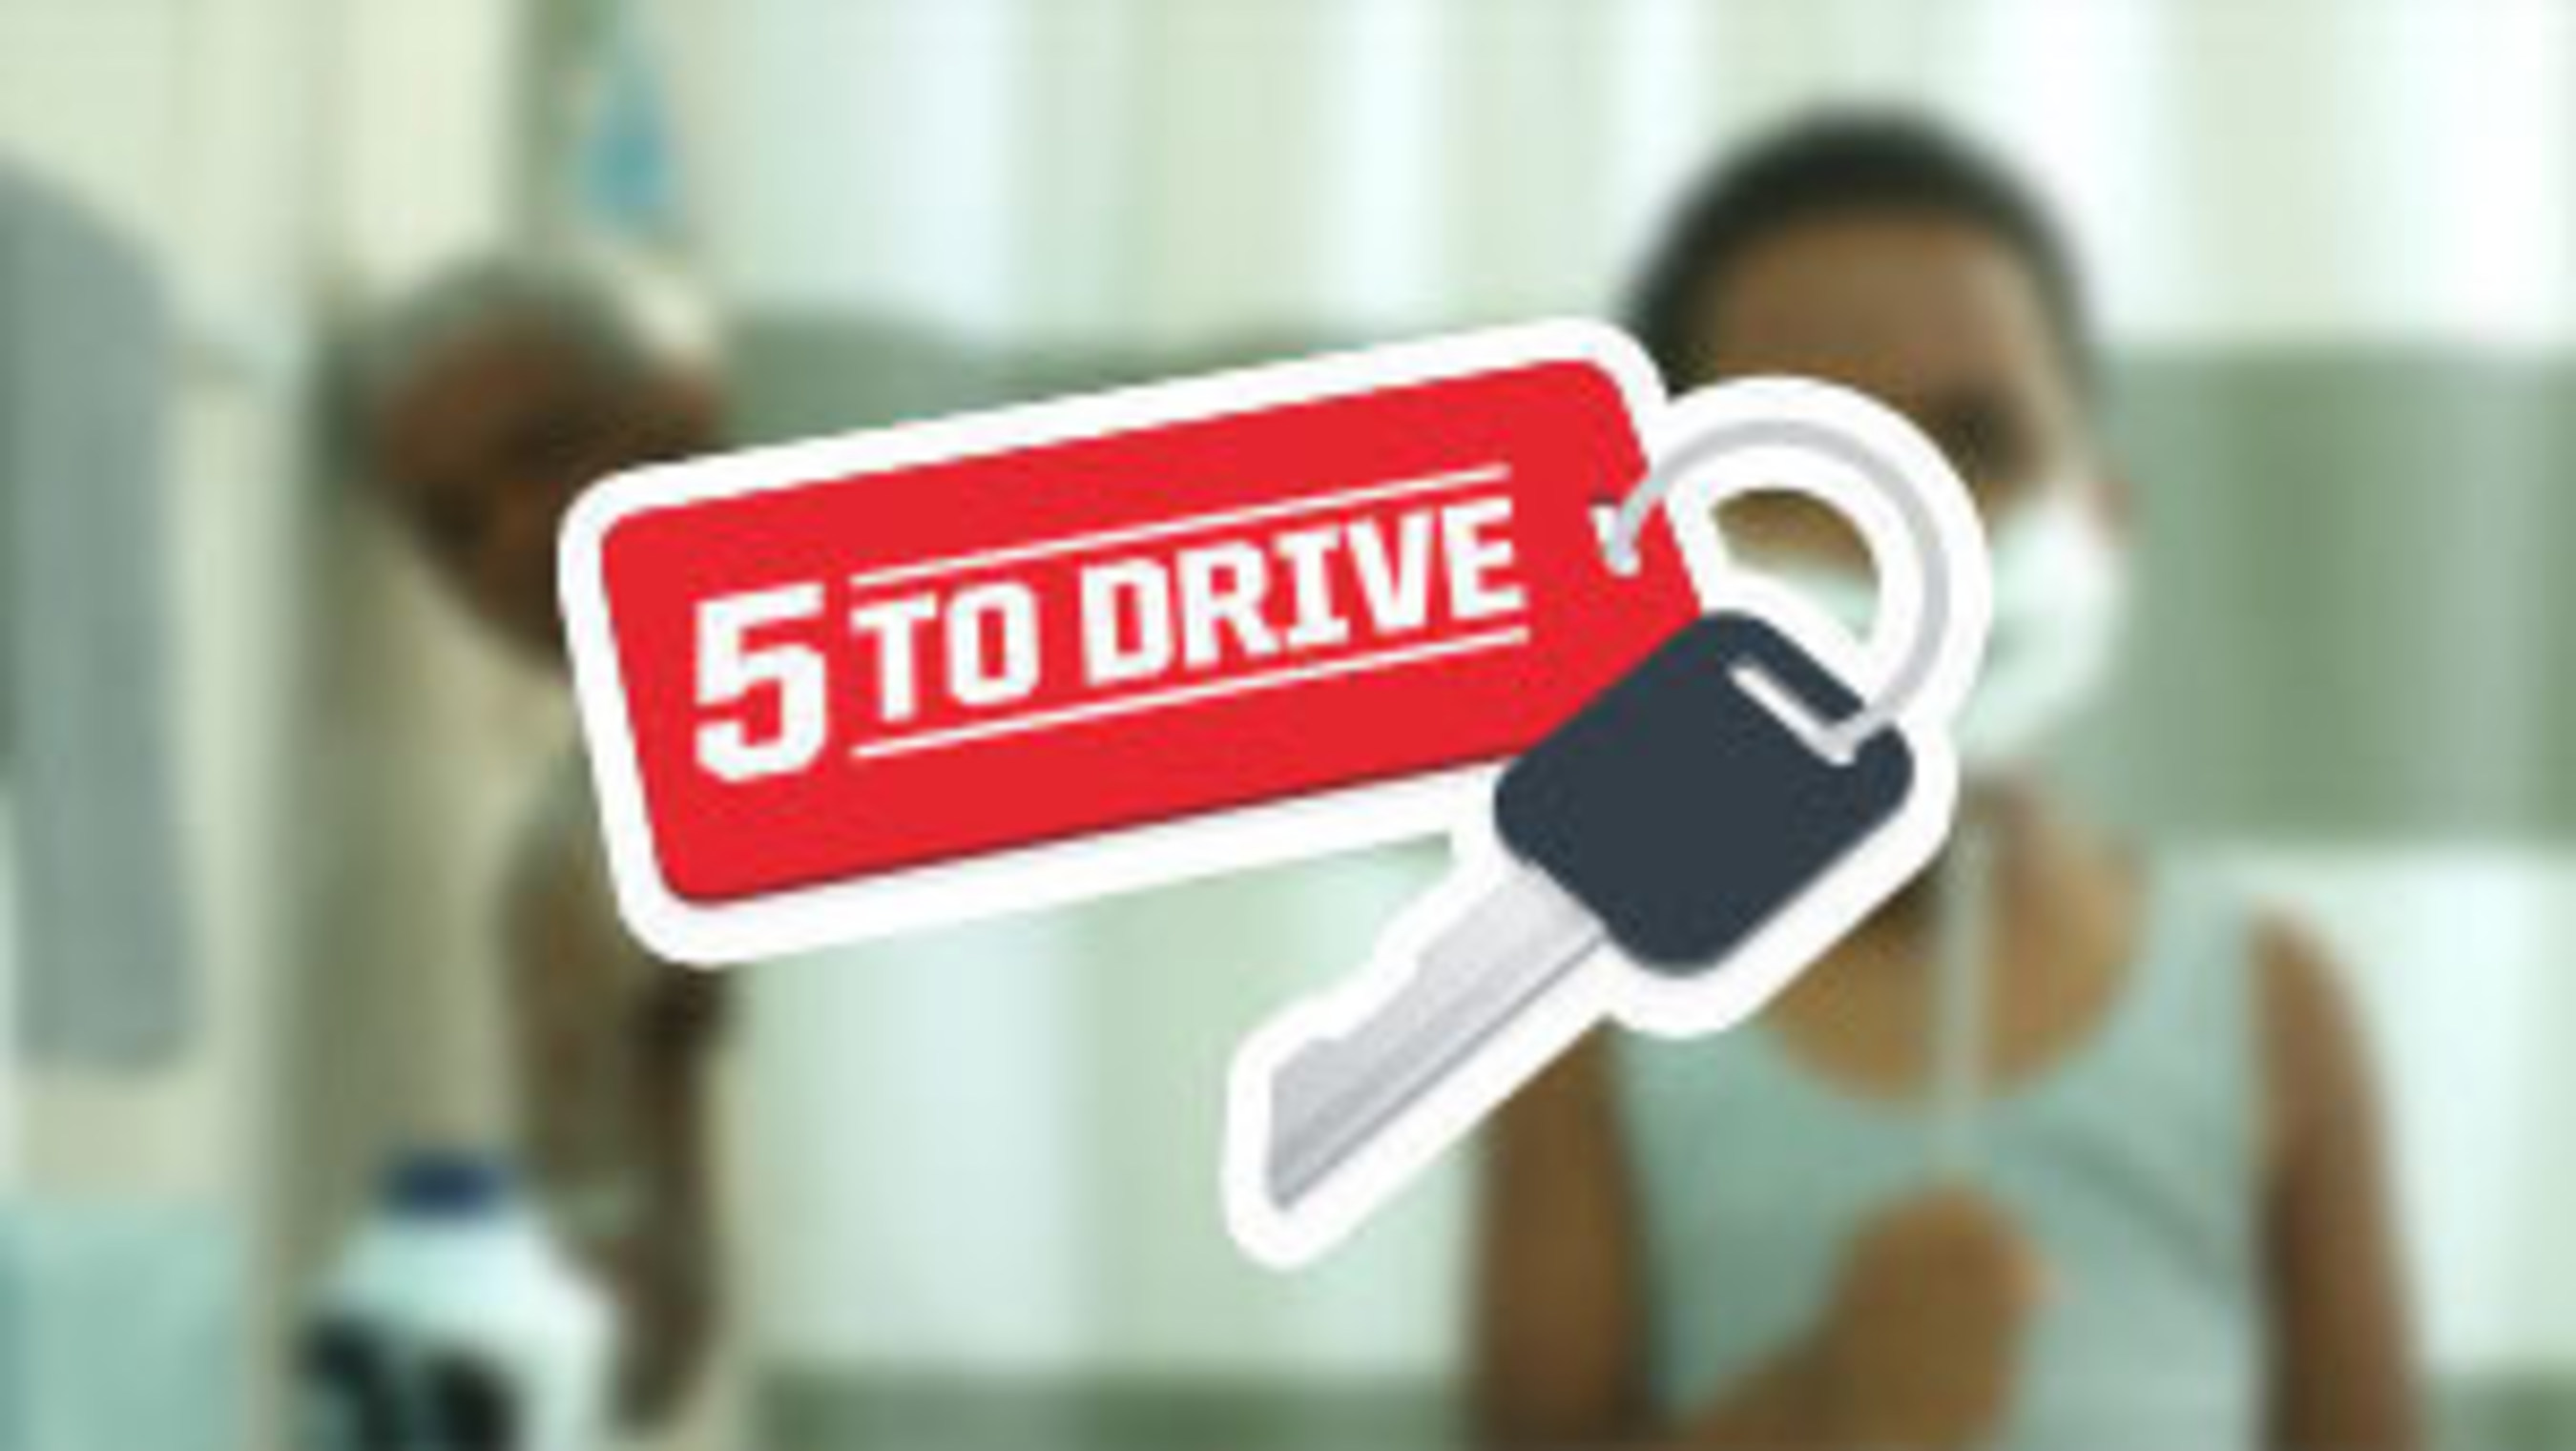 Parents of Teenagers Encouraged To Follow The '5 to Drive' Campaign